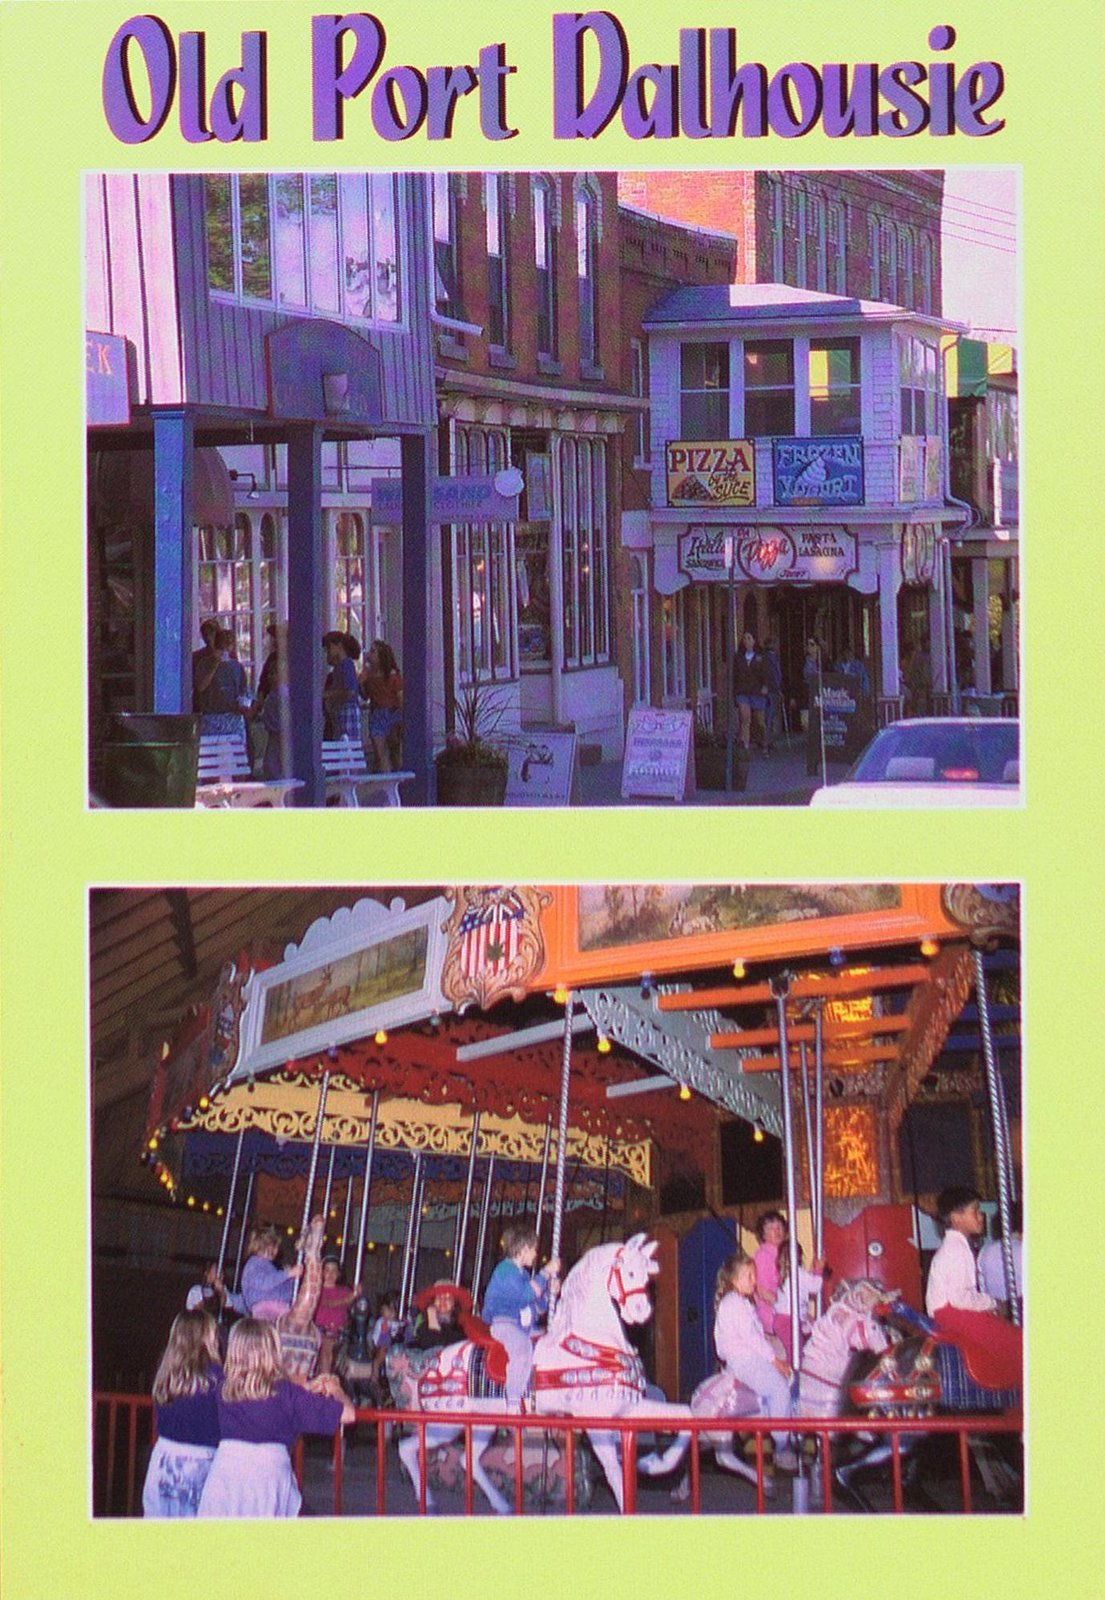 Old Port Dalhousie and the Carousel